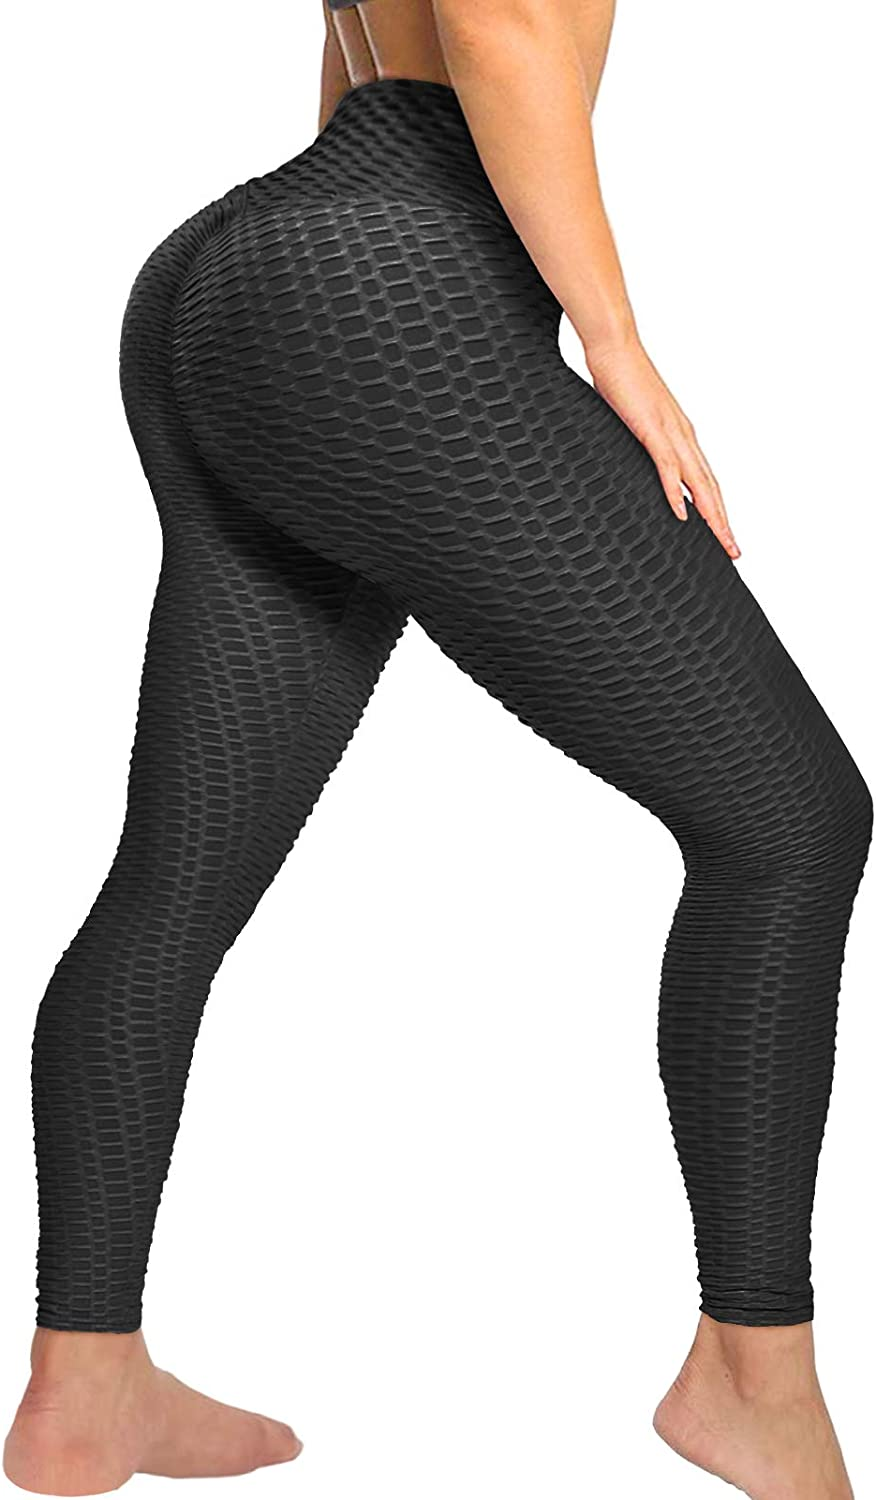 Women Anti Cellulite Leggings Booty Lifting High Waist Yoga Pants Ruched Workout